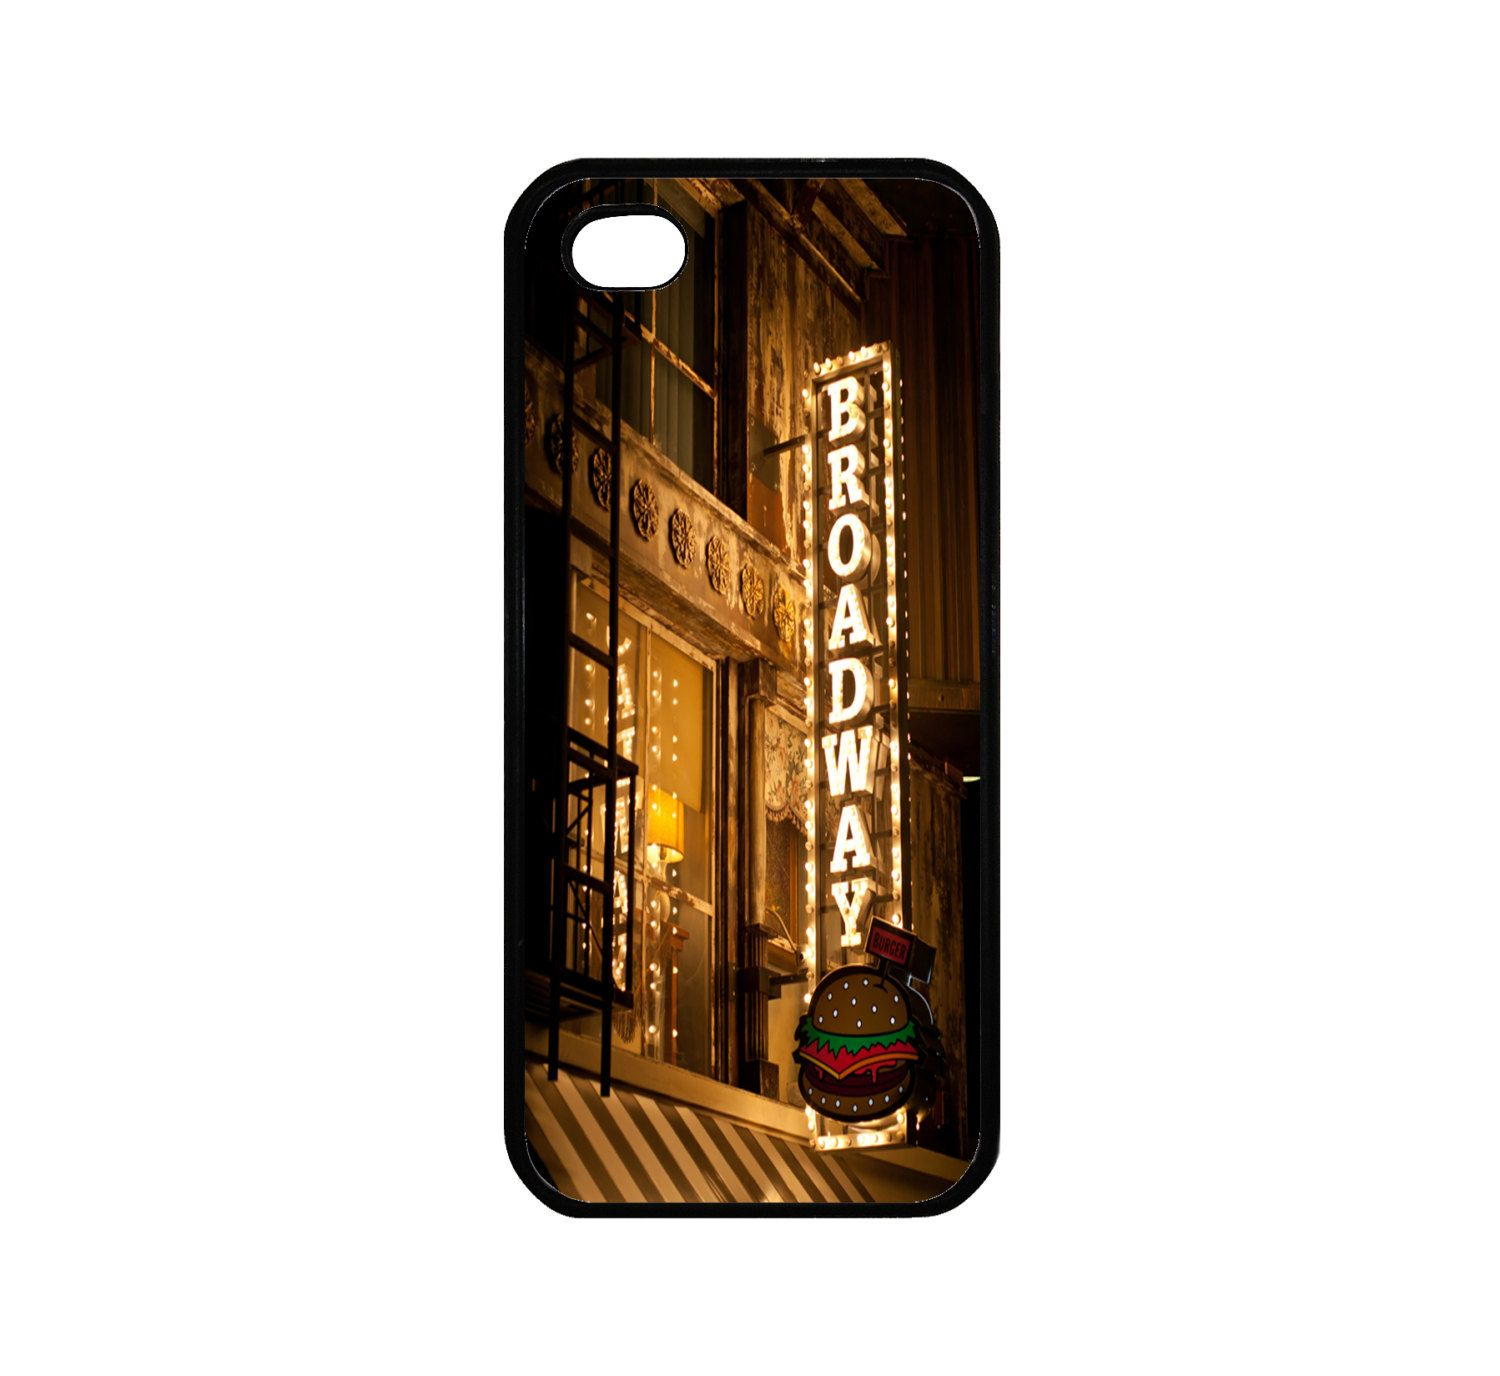 Protective RUBBER iPhone 5 Case Broadway. 19.00, via Etsy